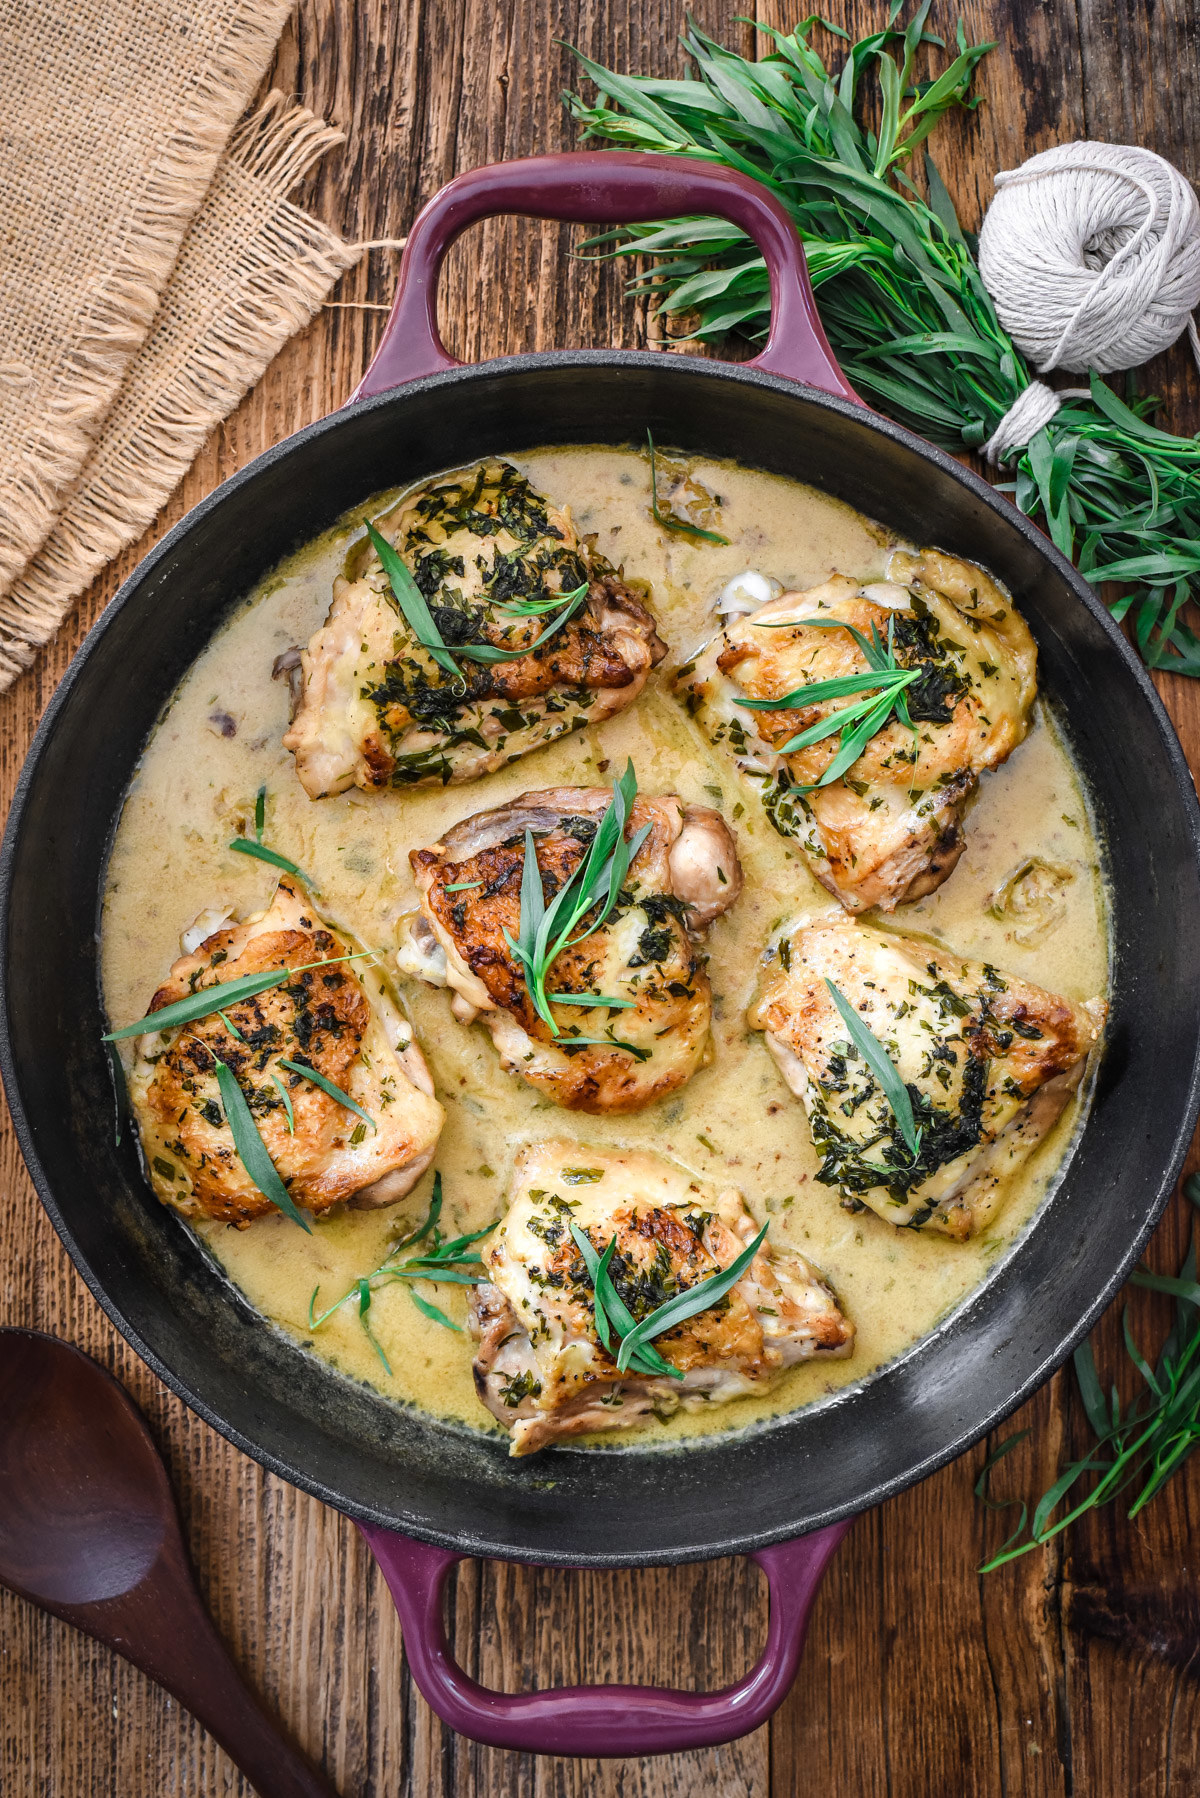 Chicken thighs in a creamy pan sauce garnished with fresh tarragon.